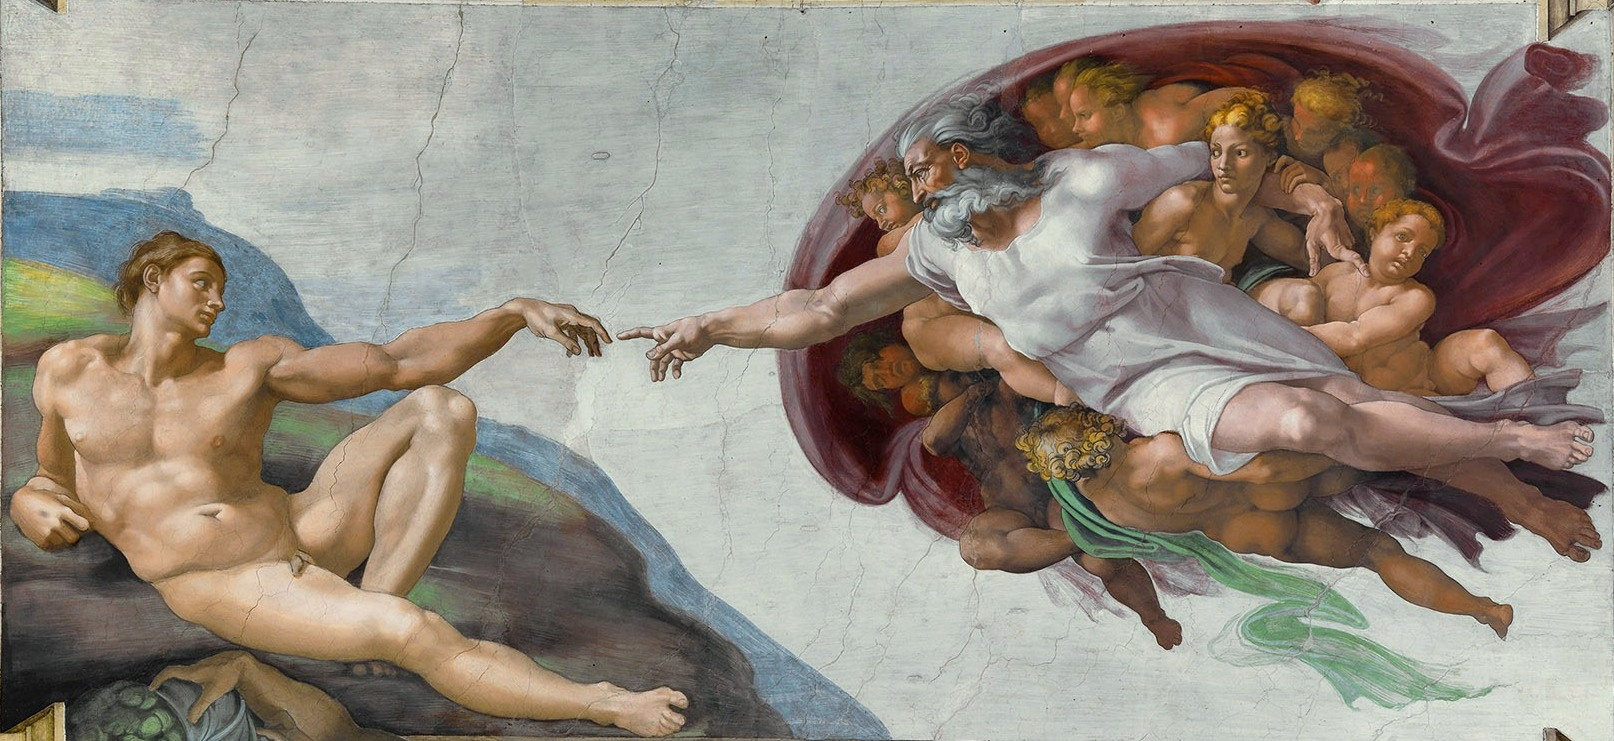 The Creation of Adam, detail of the ceiling fresco by Michelangelo, 1508–12; in the Sistine Chapel, Vatican City.